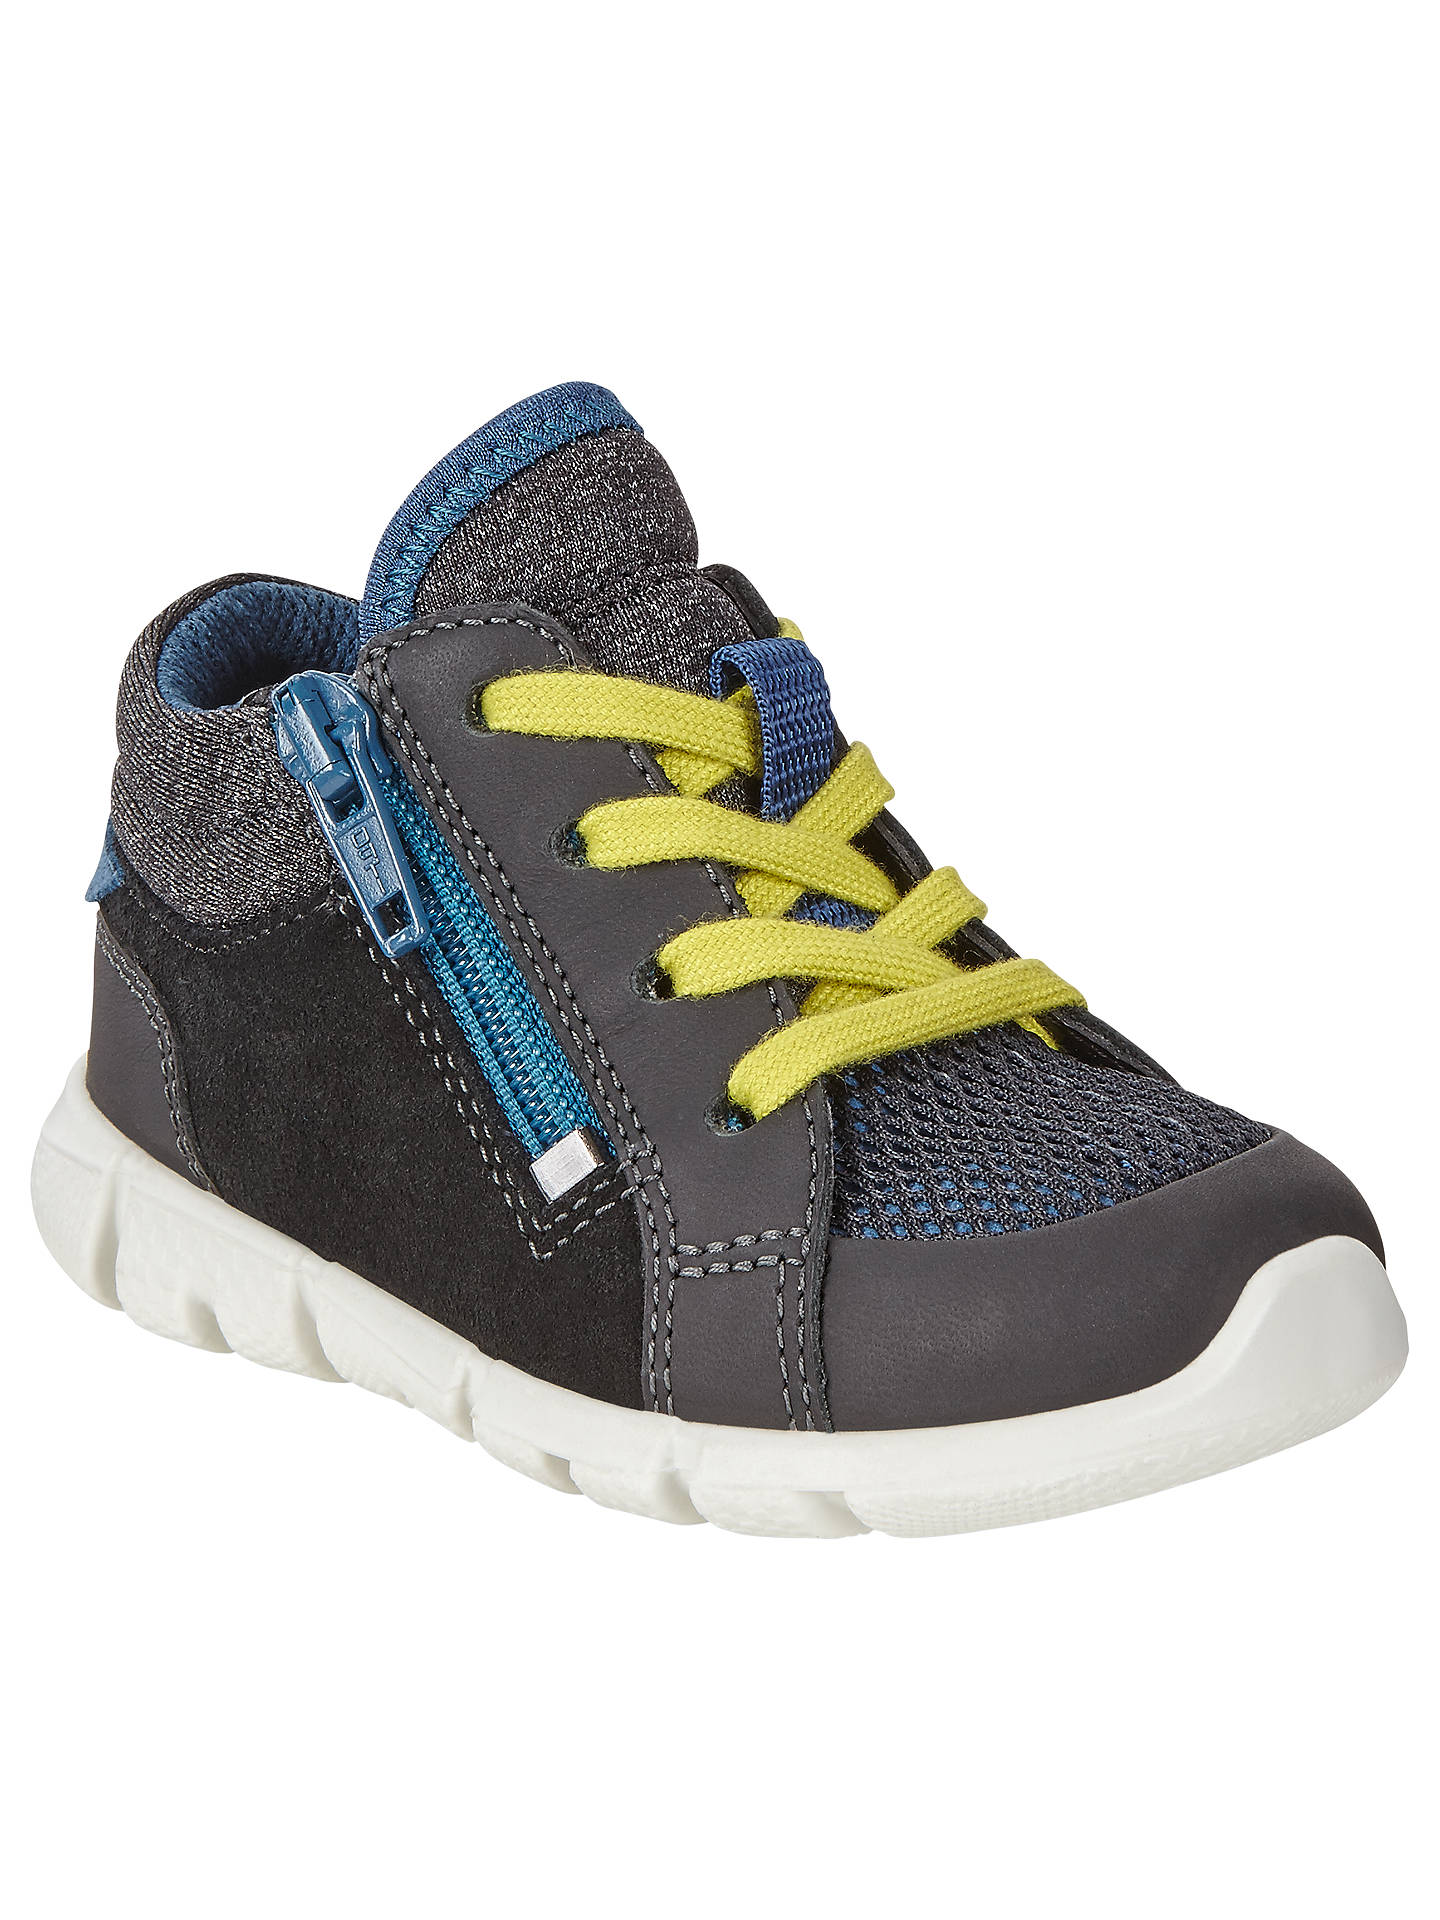 ECCO Children's Leather Lace and Zip Intrinsic Mini Shoes